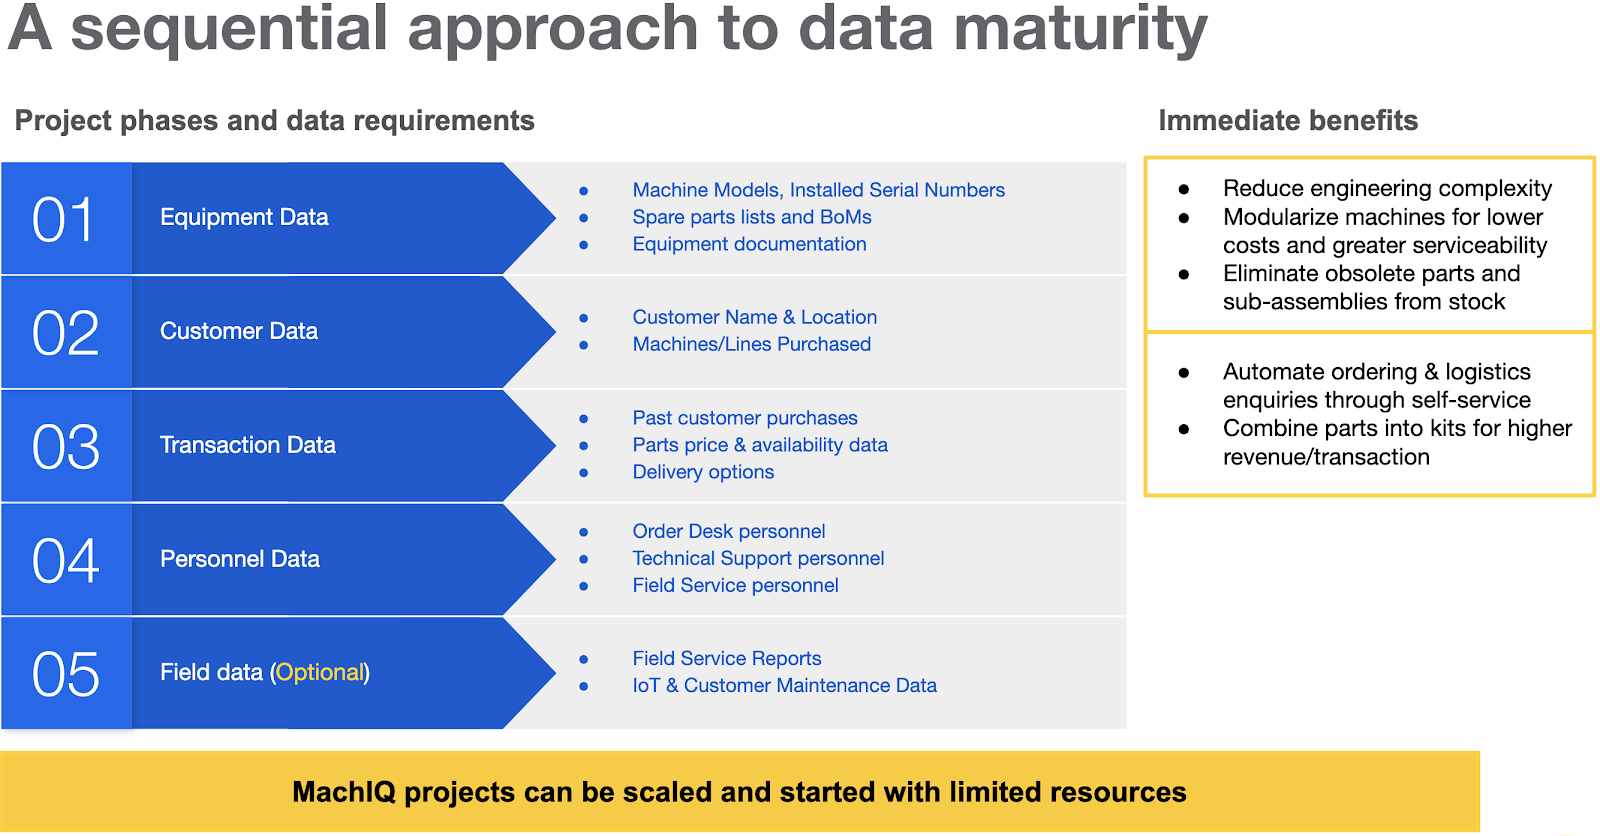 A sequential approach to data maturity - driving business value early from data cleansing activities.